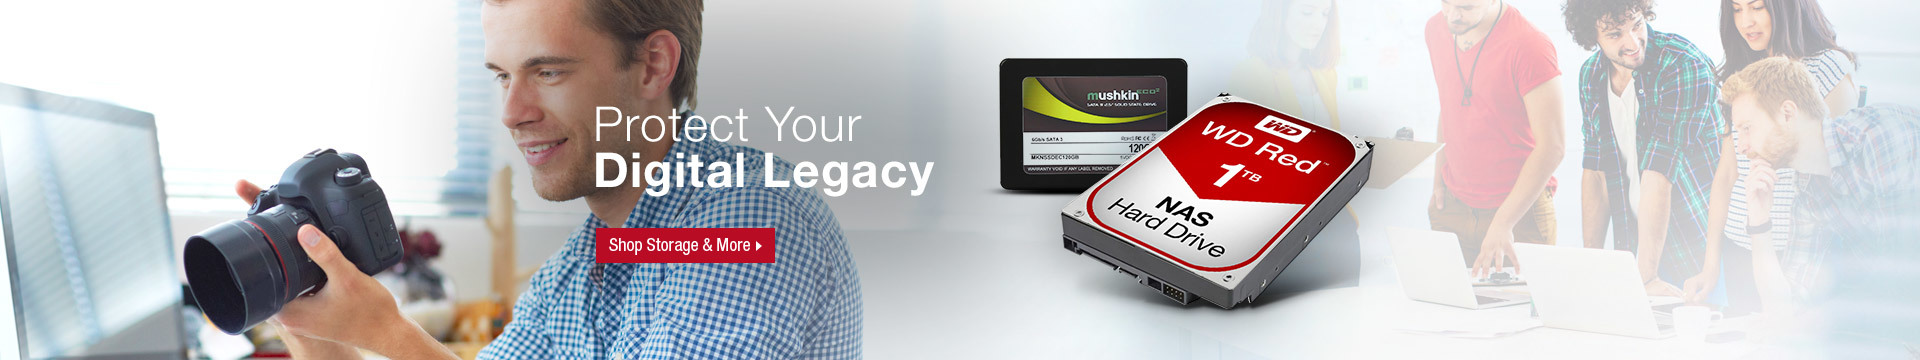 Protect your digital legacy